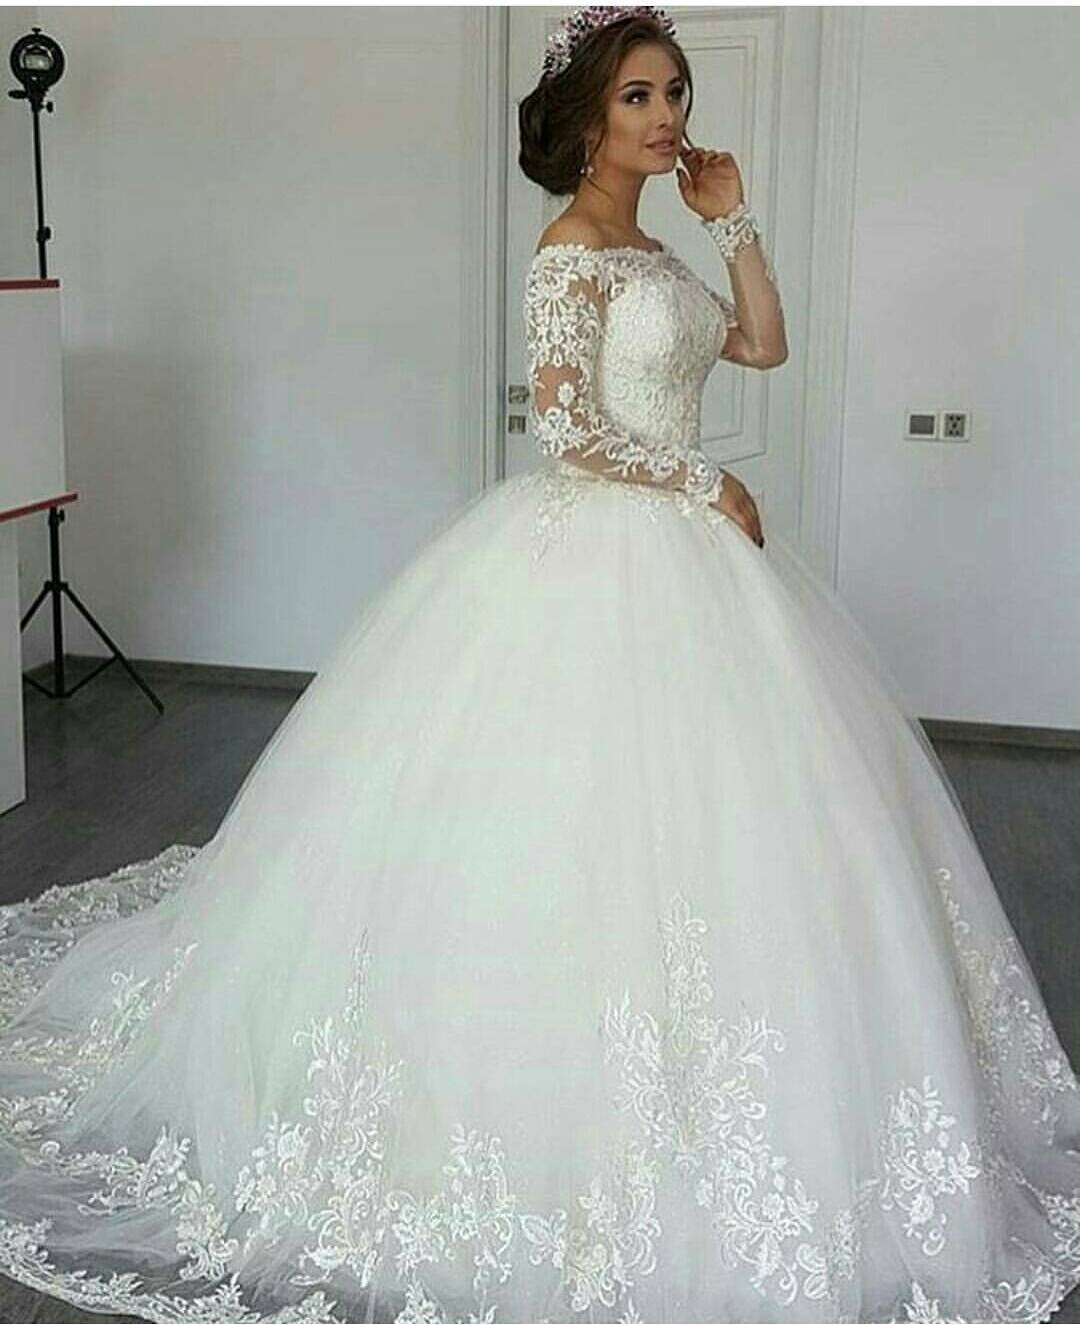 a8d9642967bd Long Sleeve Wedding Dress, Ivory Wedding Dress, Wedding Ball Gown, Lace  Applique Wedding Dress, Elegant Wedding Dress, Unique Wedding Dress, ...